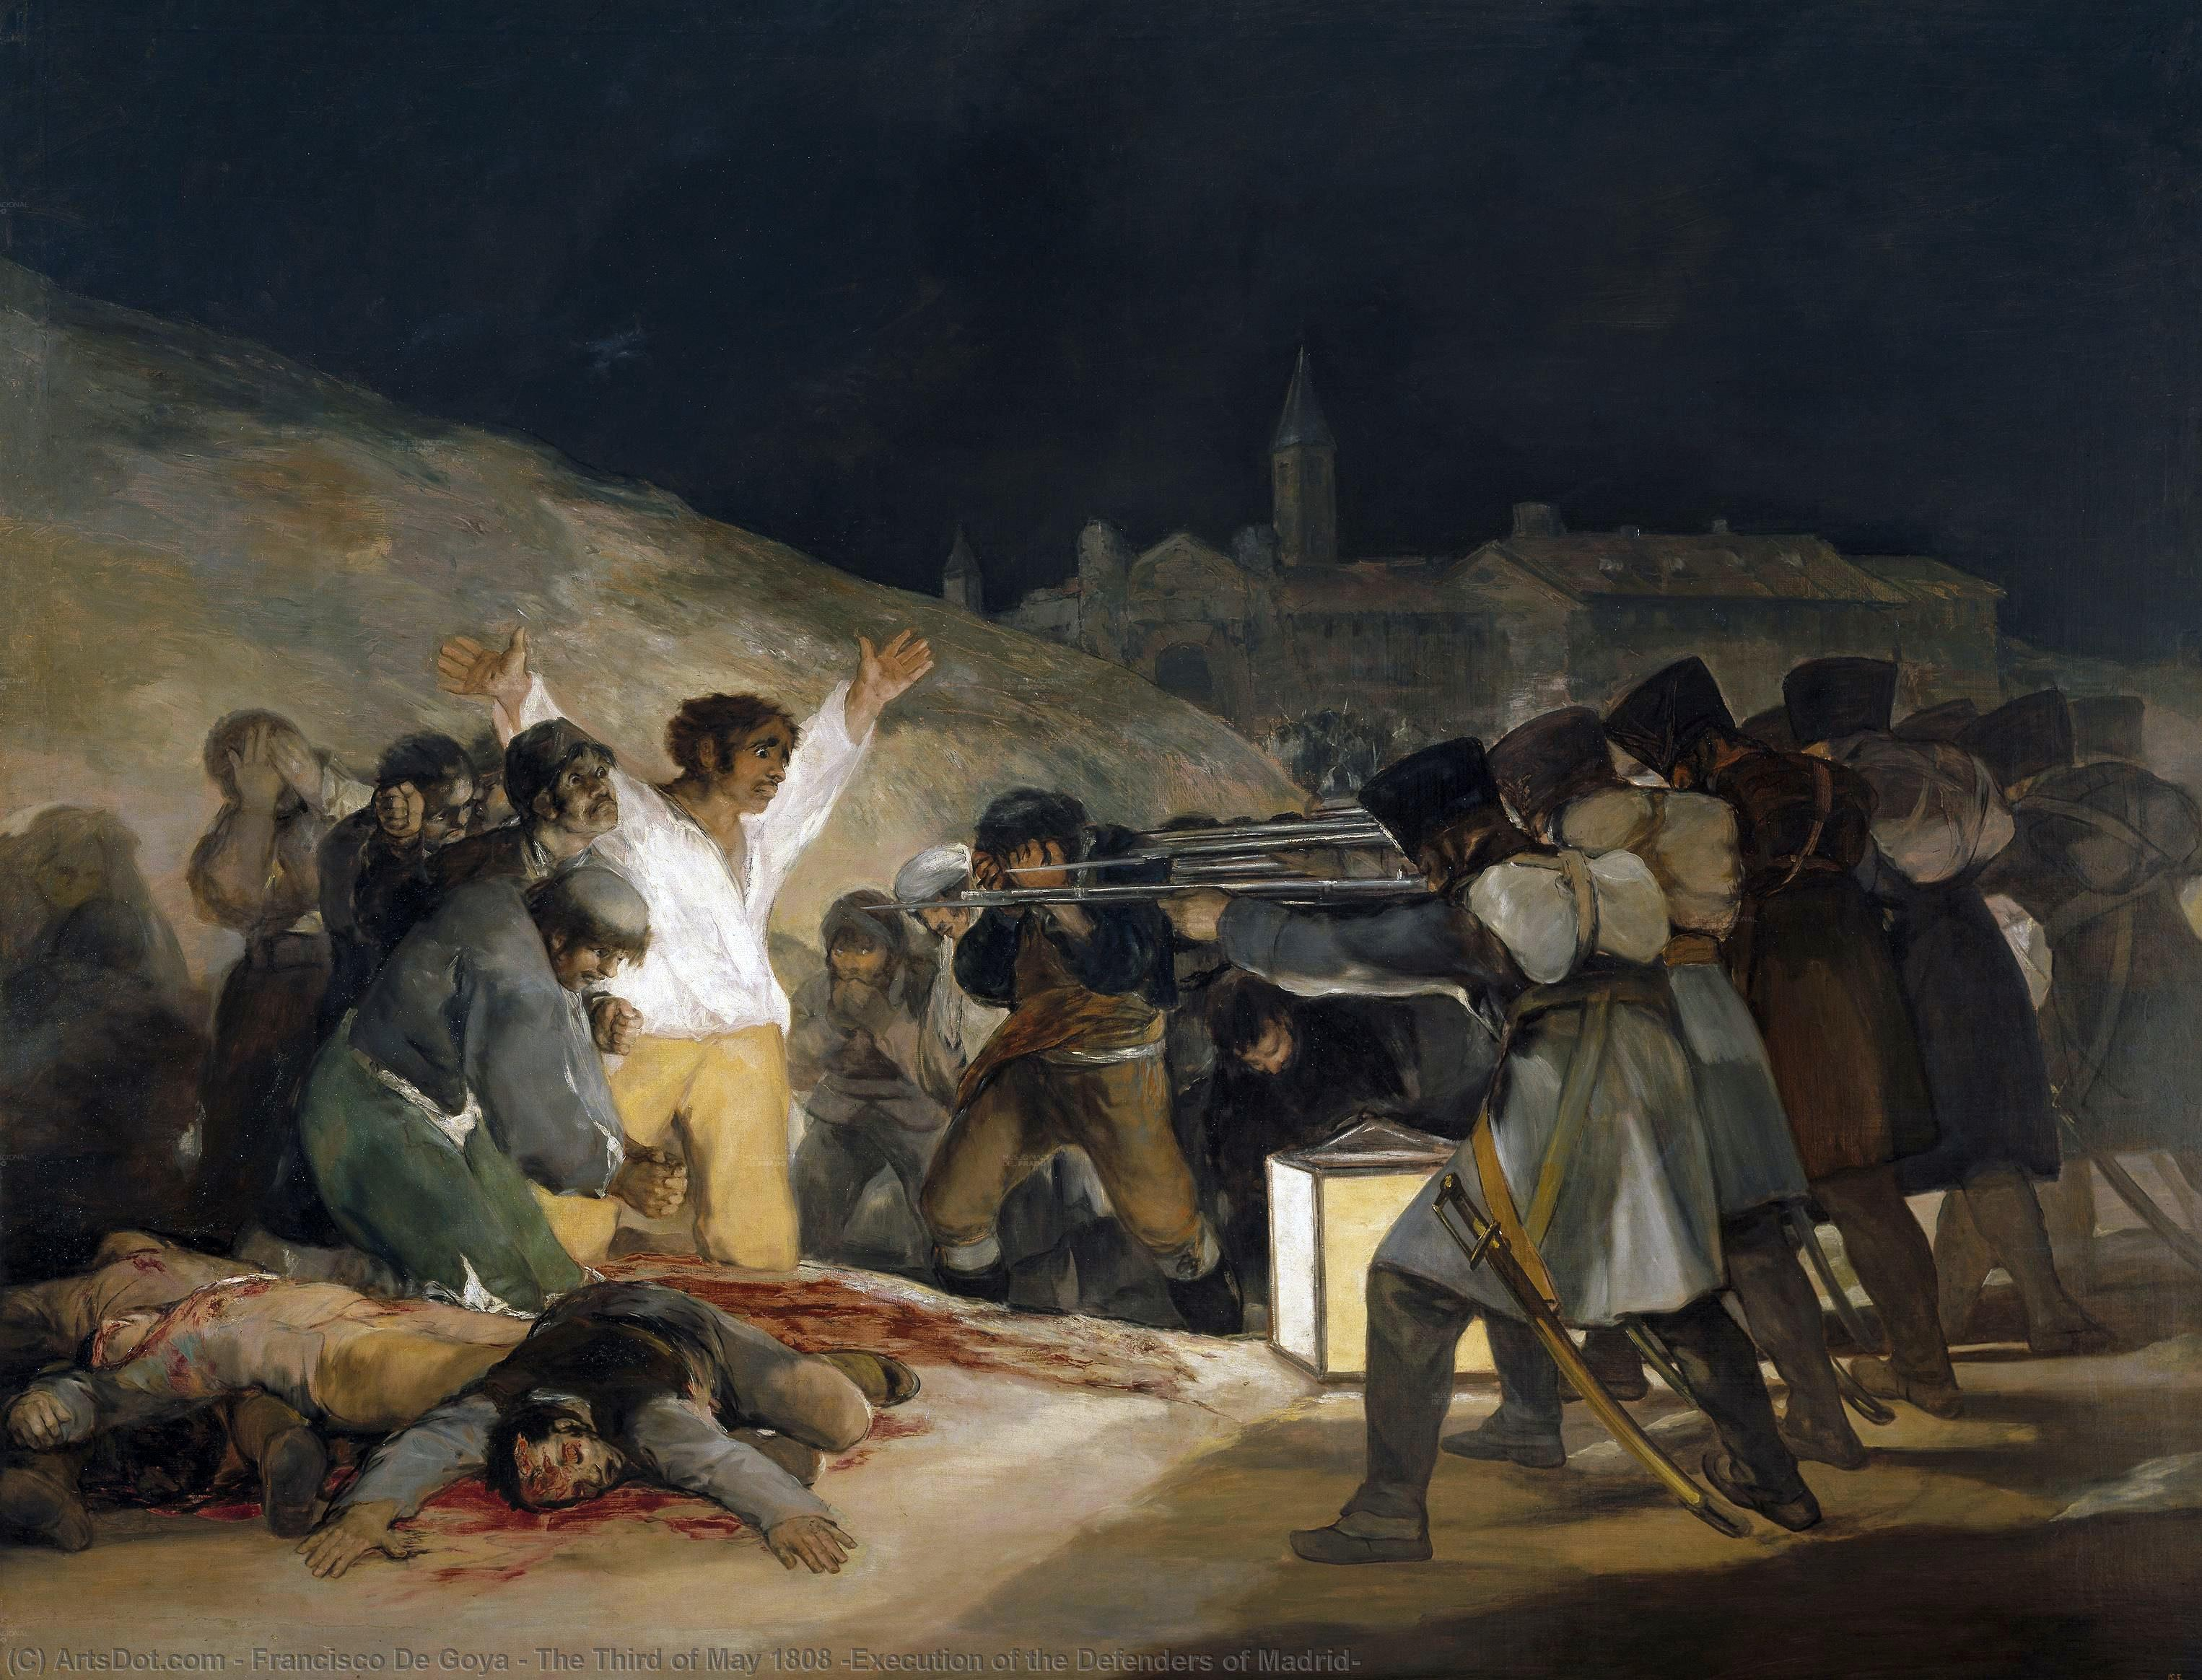 The Third of May 1808 (Execution of the Defenders of Madrid), 1814 by Francisco De Goya (1746-1828, Spain) | Art Reproductions Francisco De Goya | ArtsDot.com